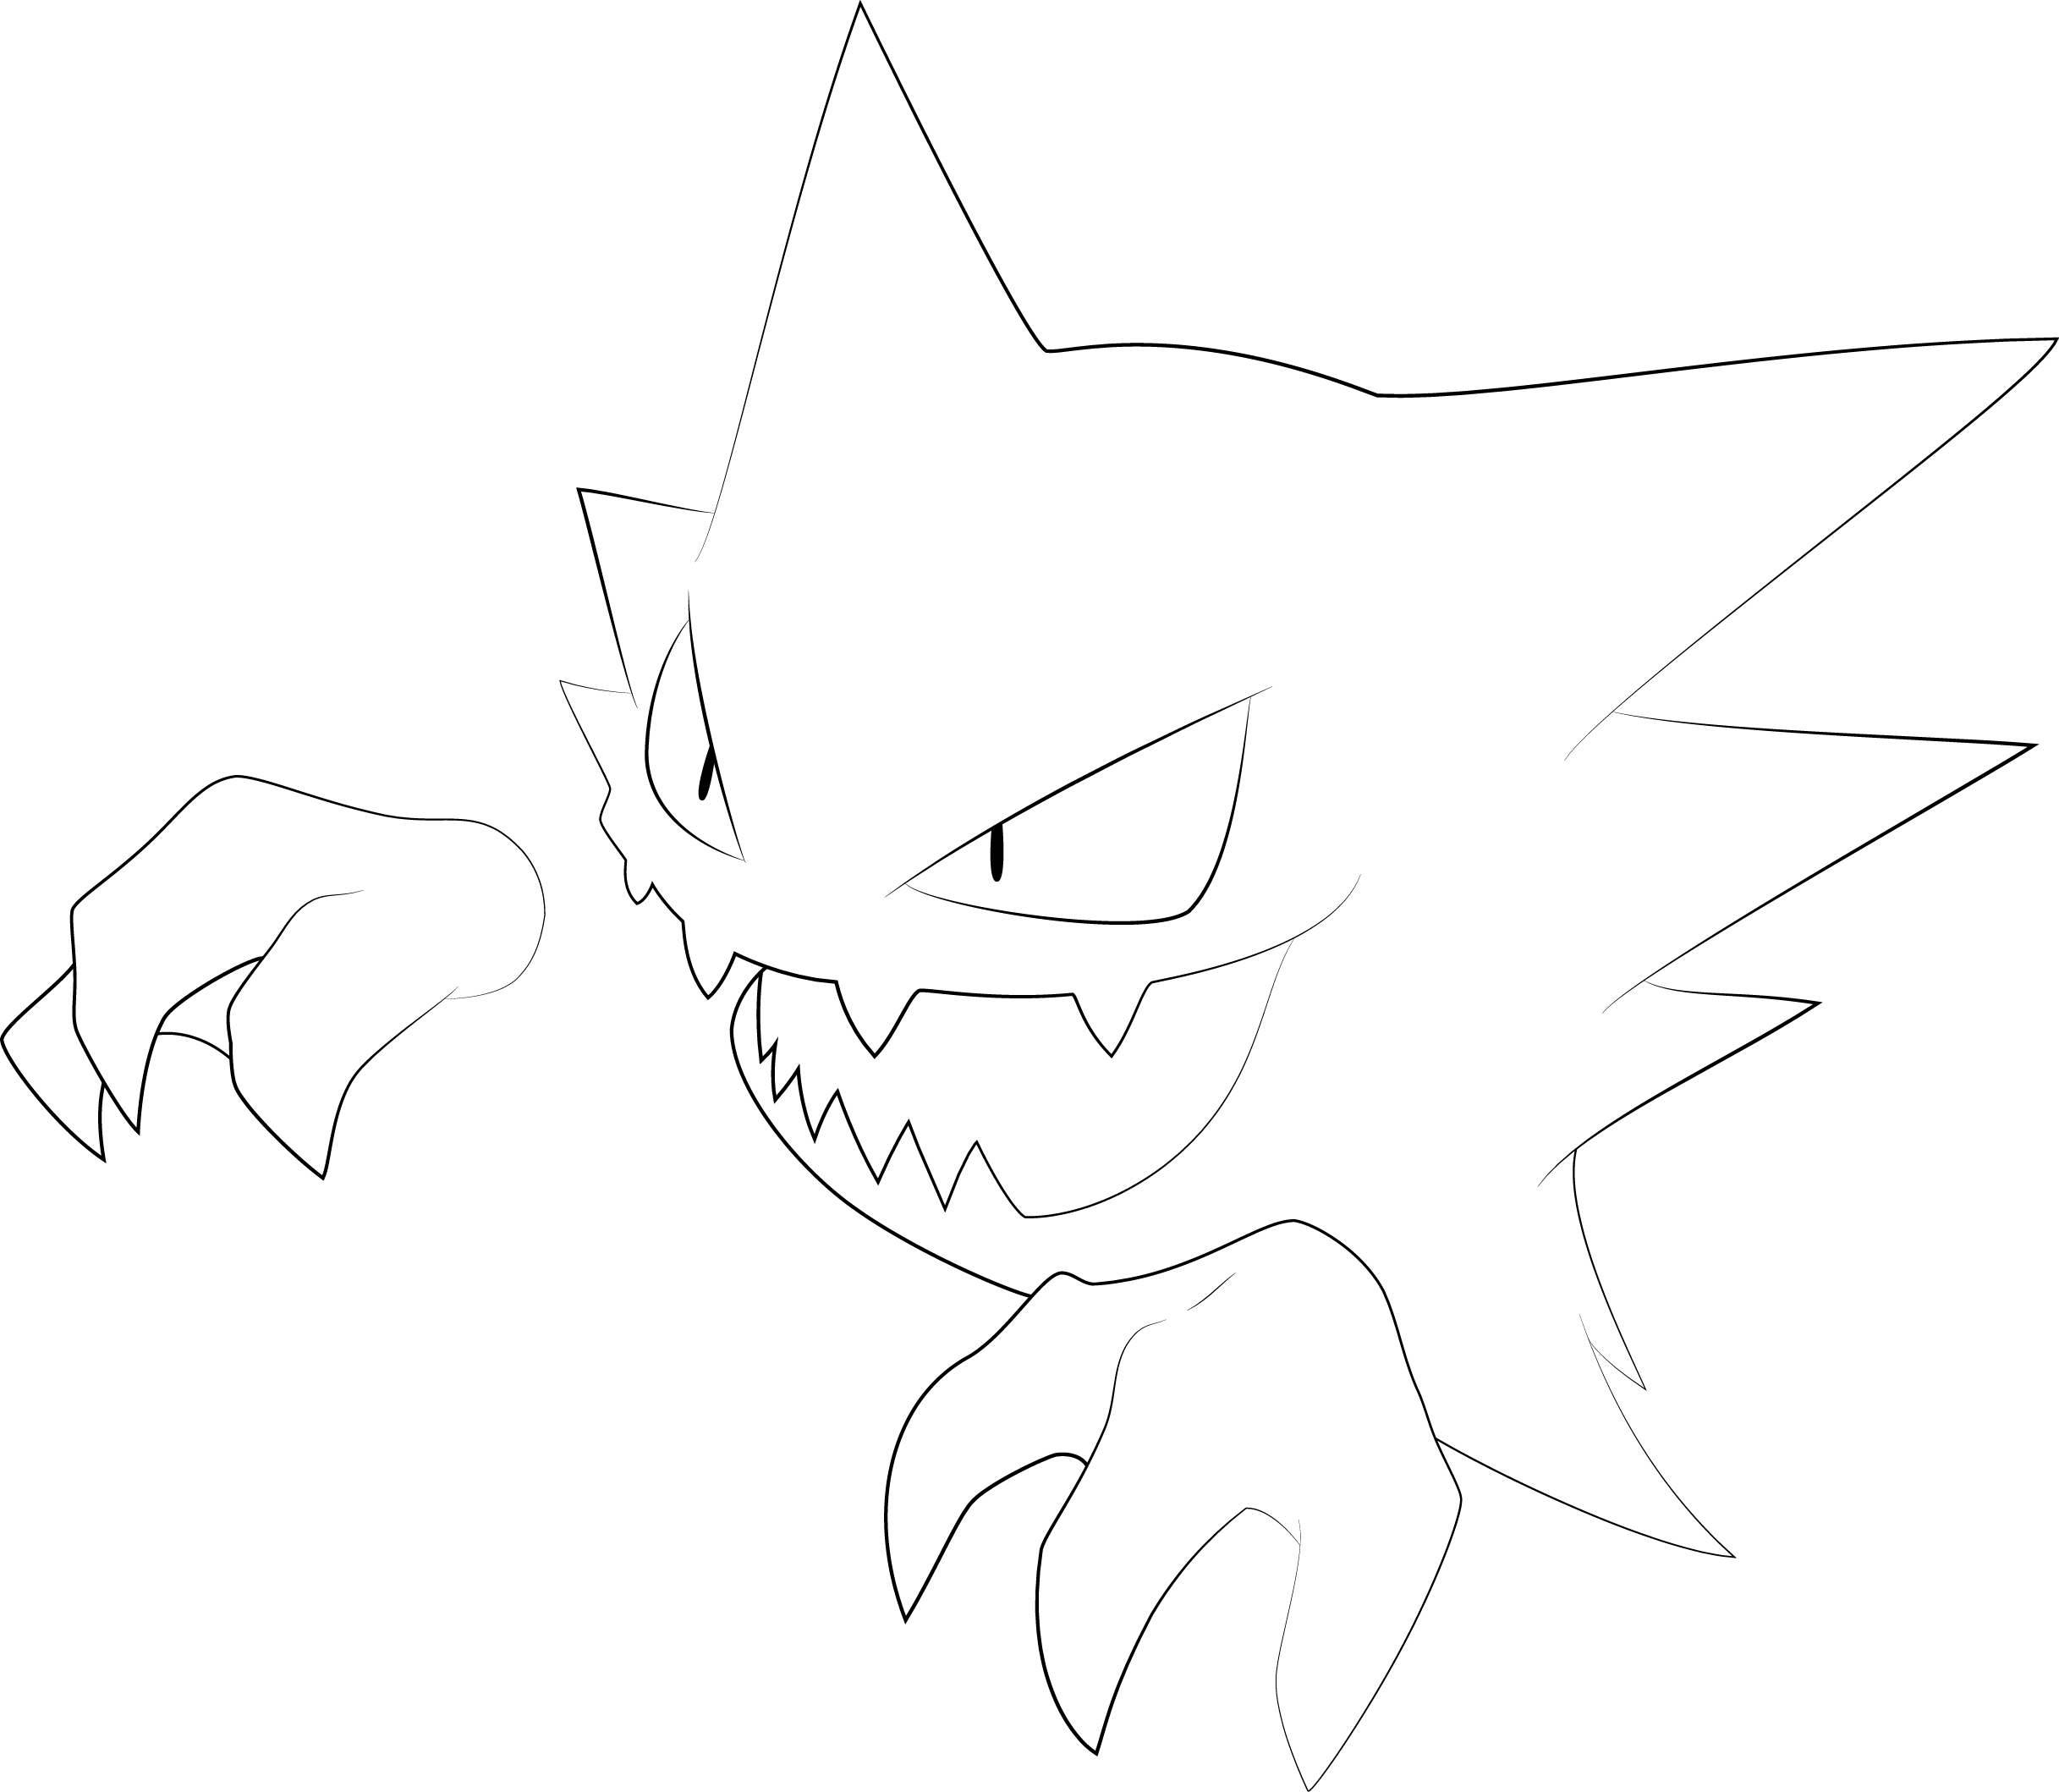 Haunter drawing. Line art by alcadeas